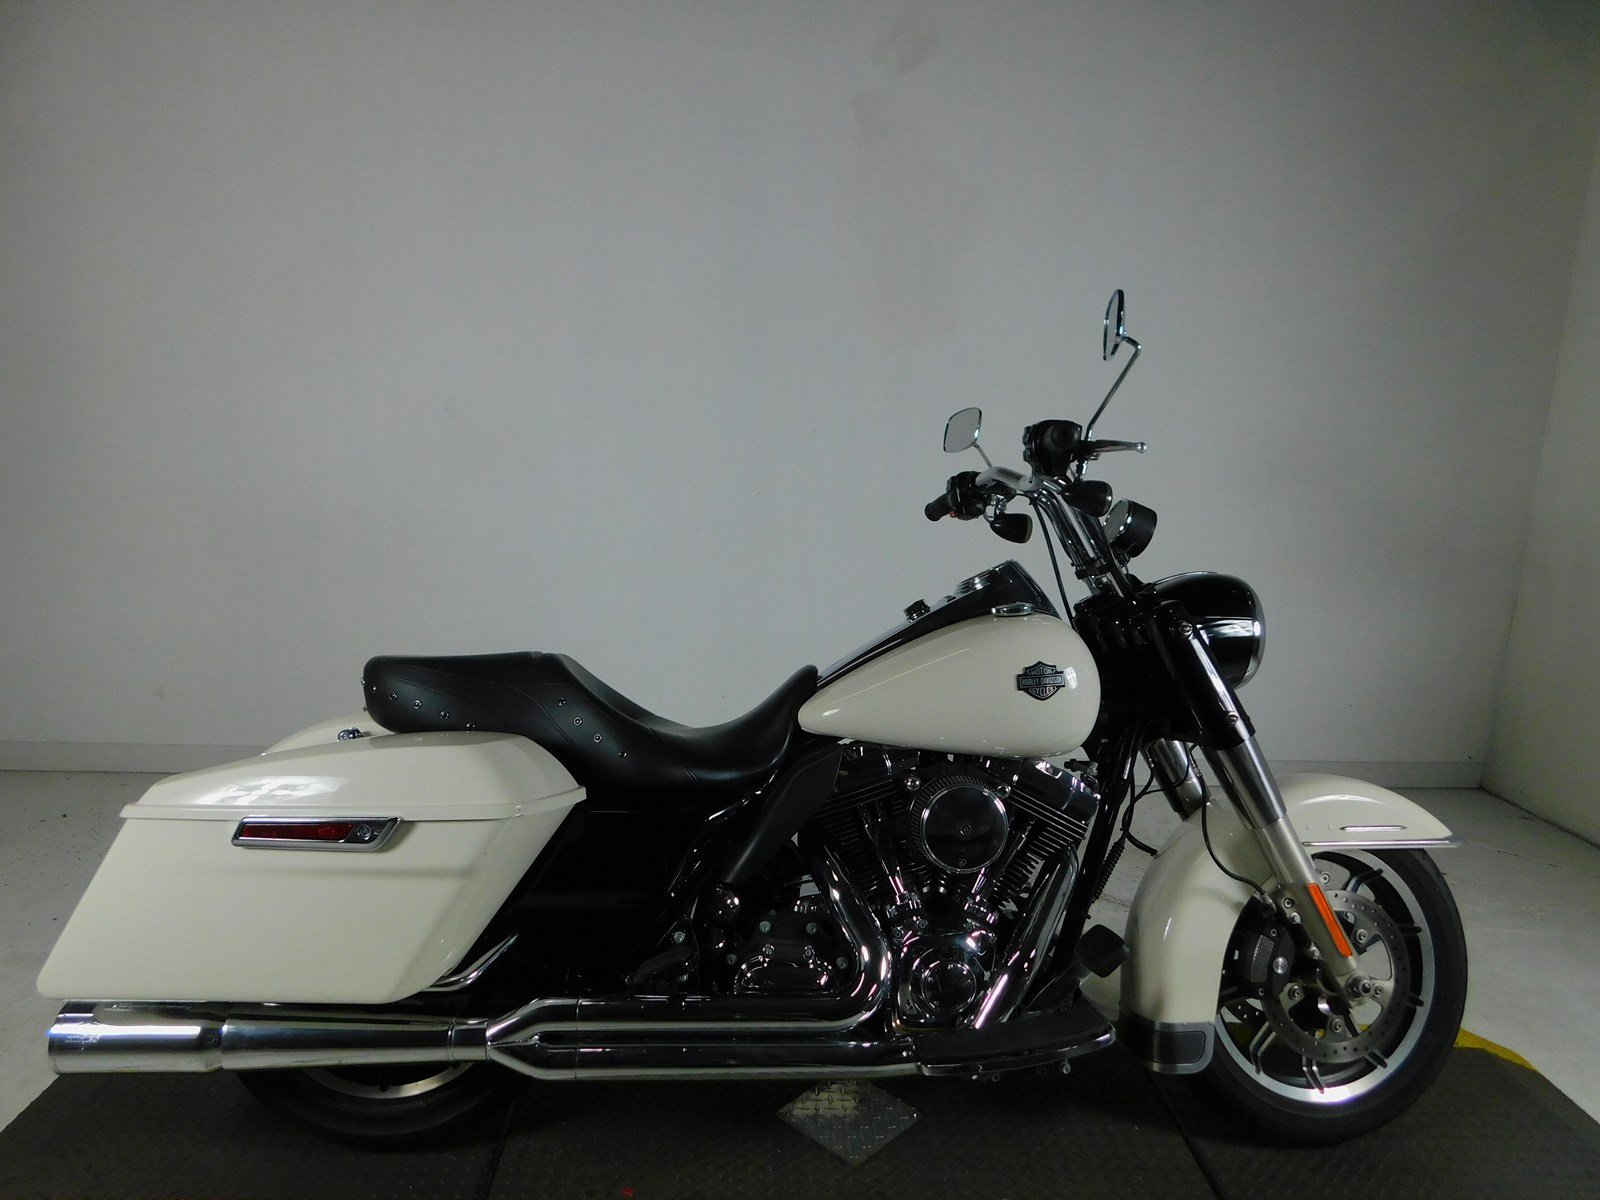 Pre-Owned 2015 Harley-Davidson Road King Police FLHP